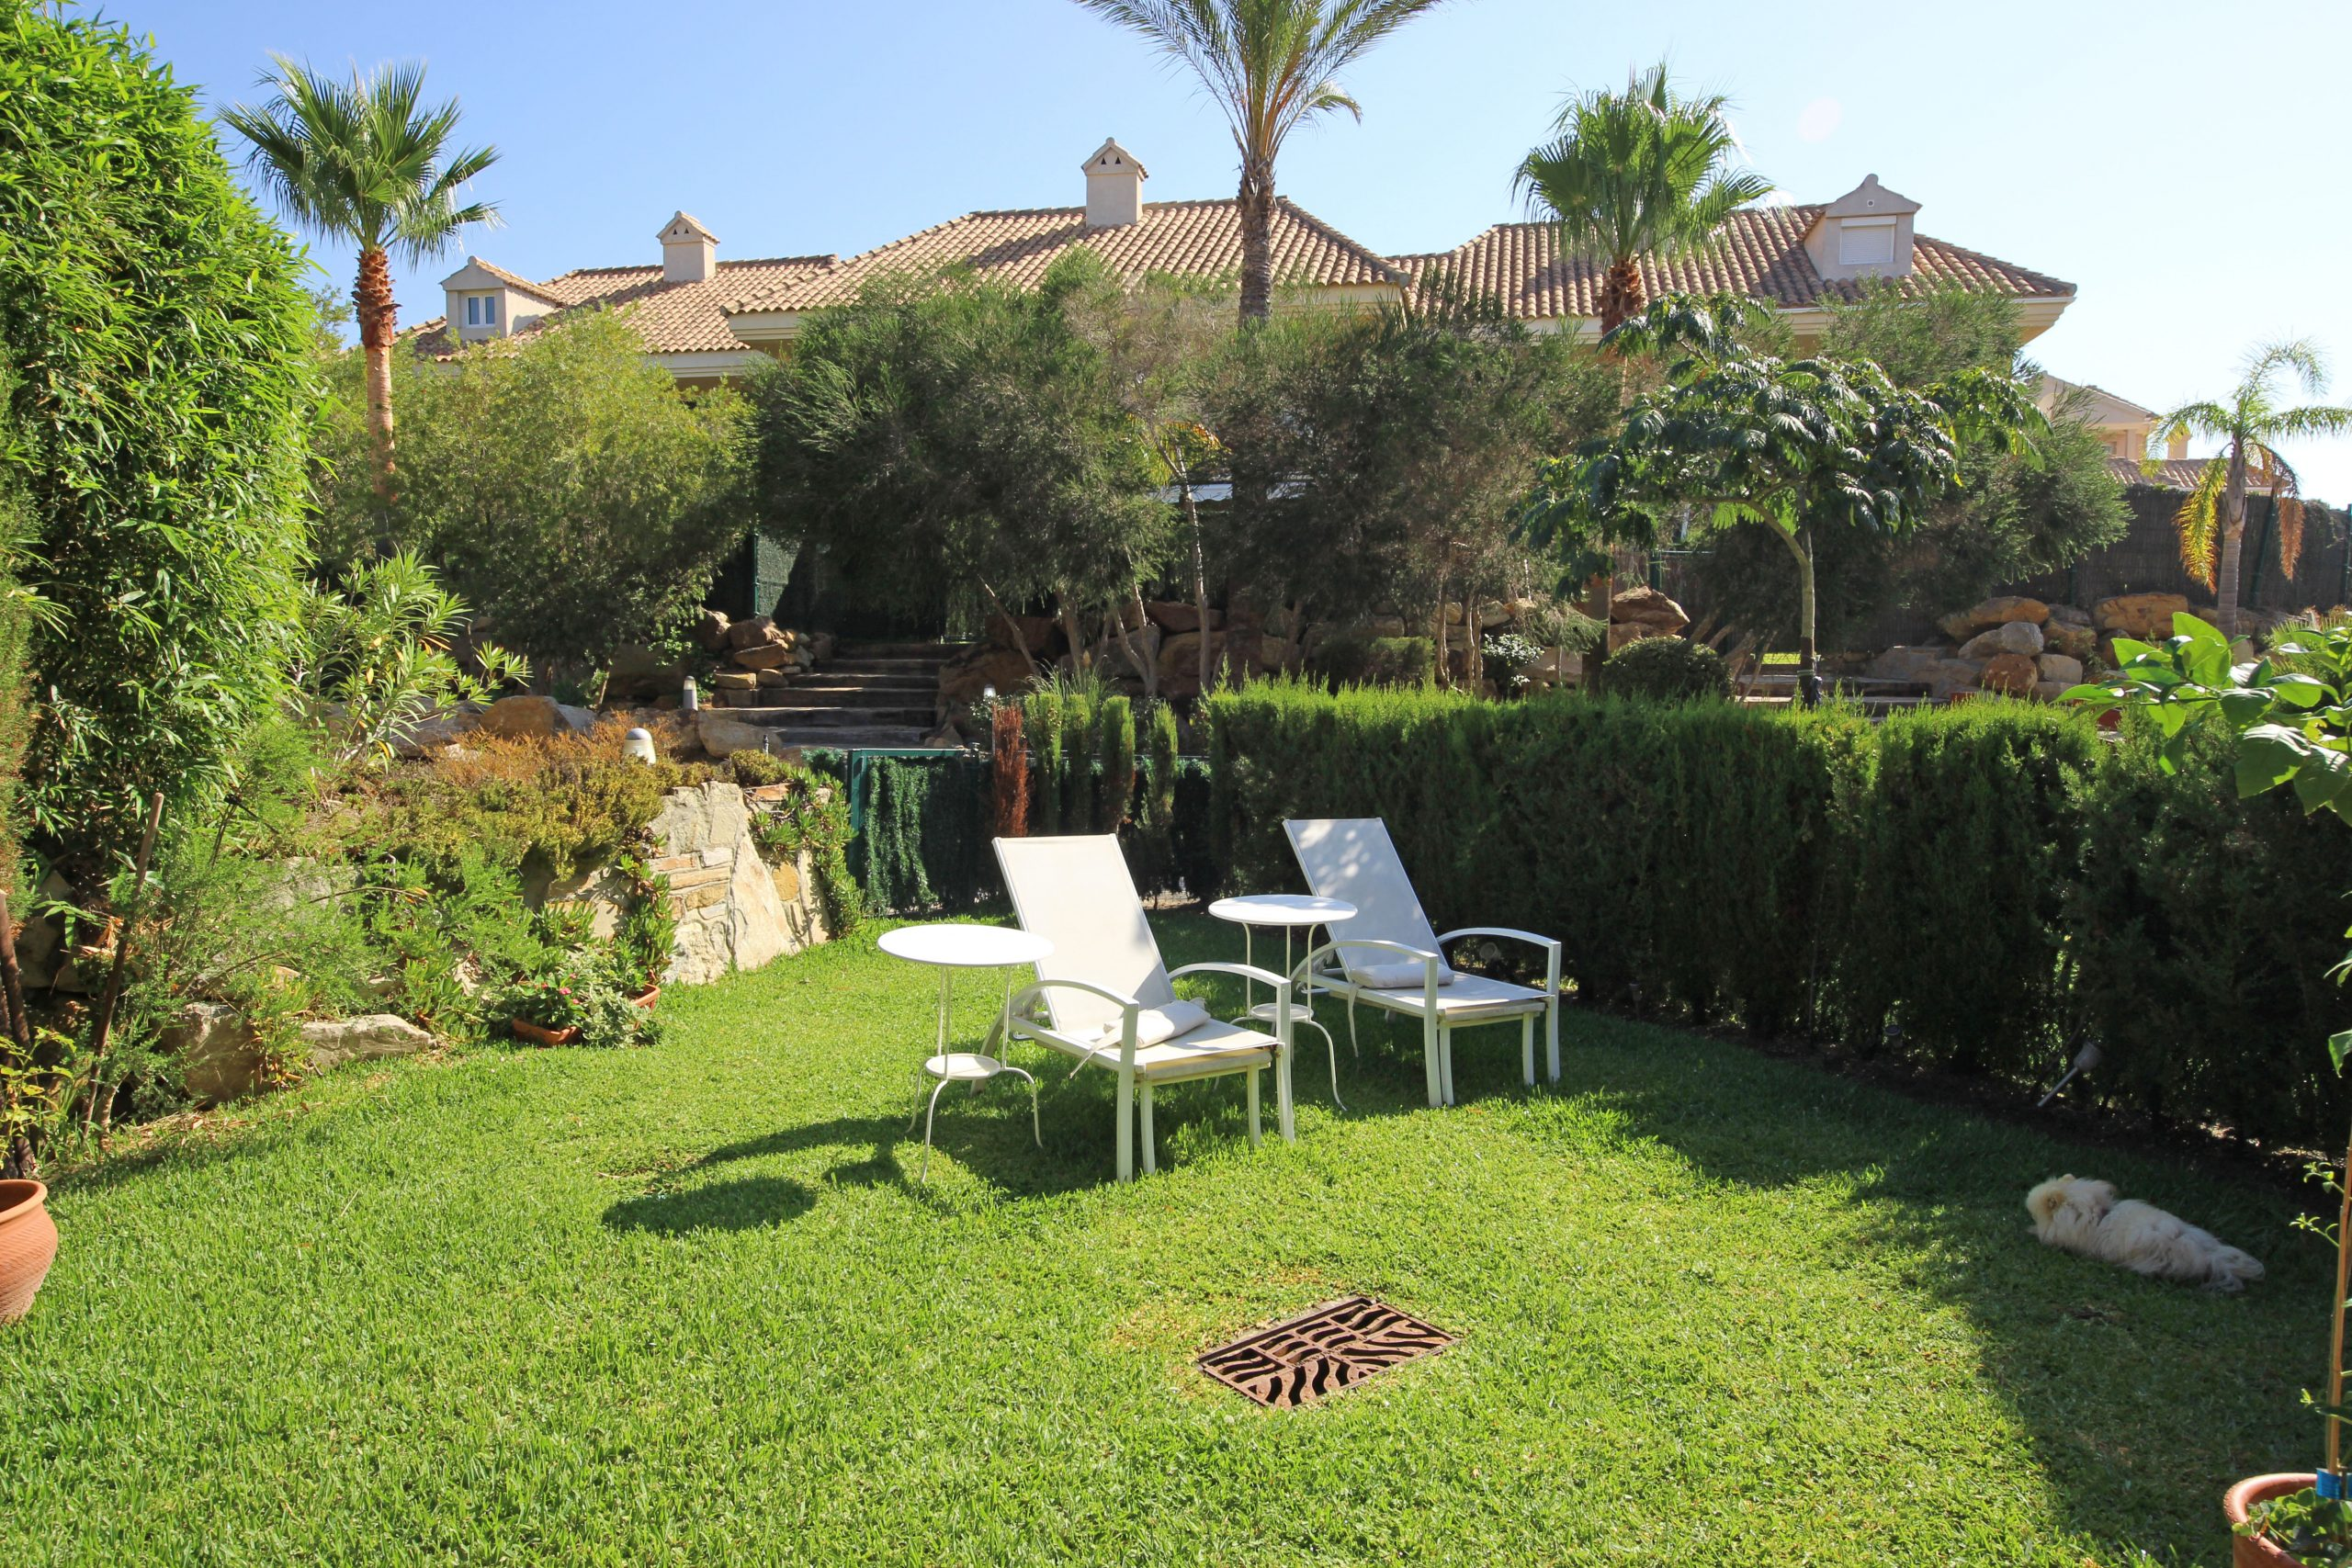 4 bedroom townhouse with a private garden